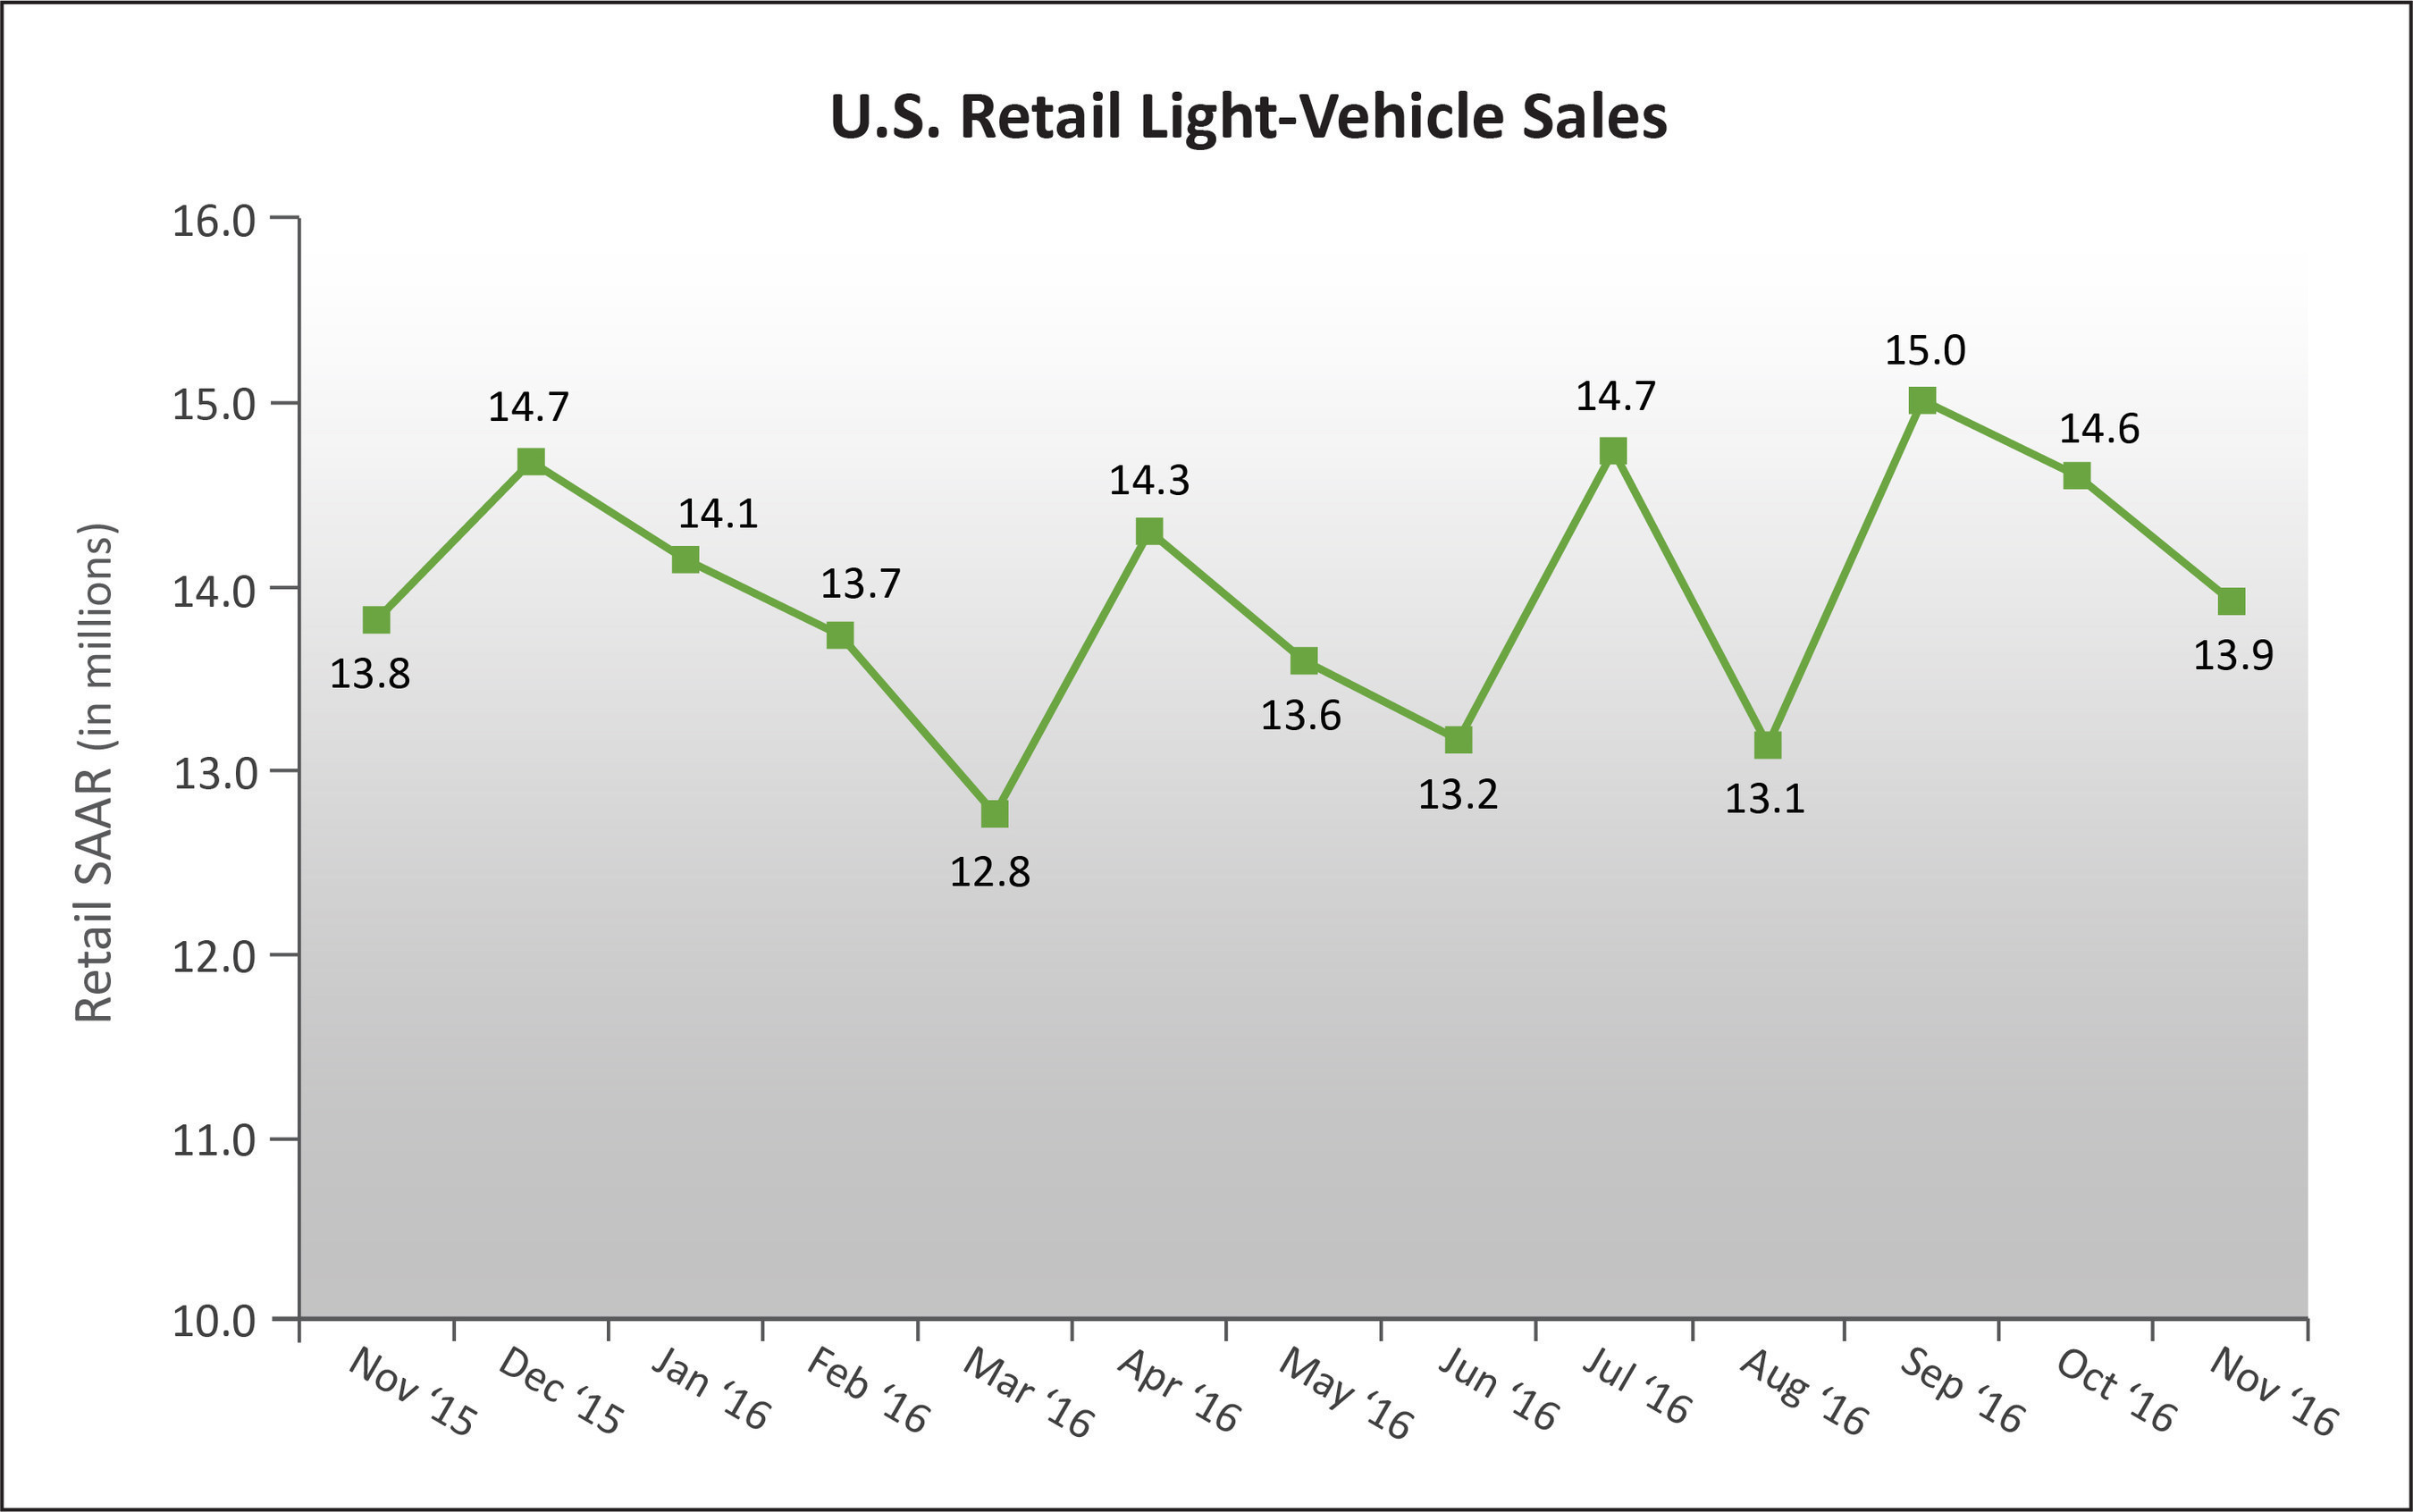 U.S. Retail SAAR--November 2015 to November 2016 (in millions of units) Source: Power Information Network(R) (PIN) from J.D. Power